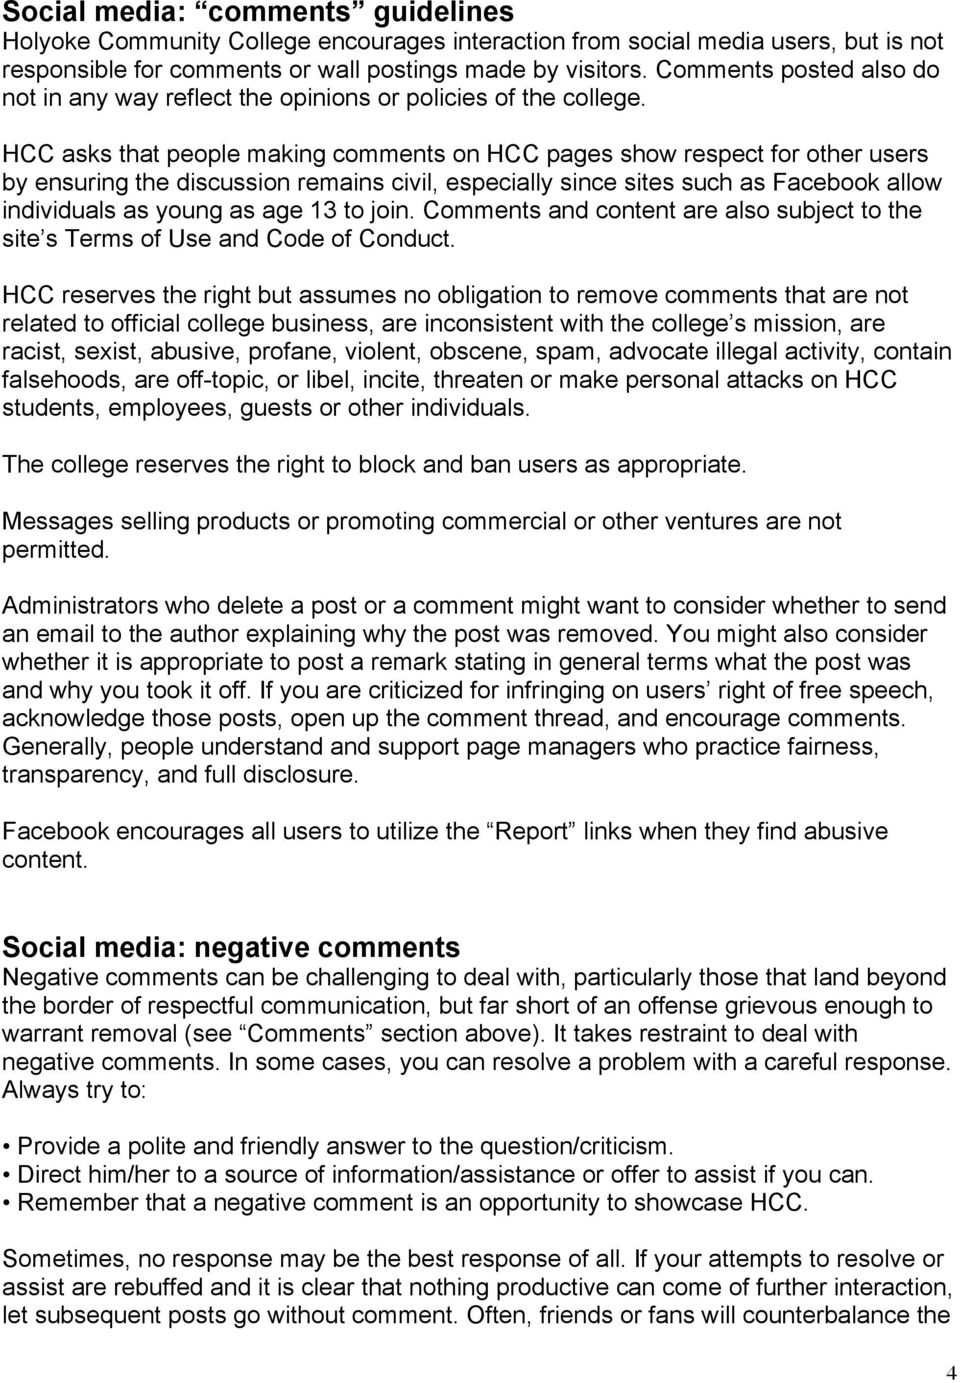 HCC asks that people making comments on HCC pages show respect for other users by ensuring the discussion remains civil, especially since sites such as Facebook allow individuals as young as age 13